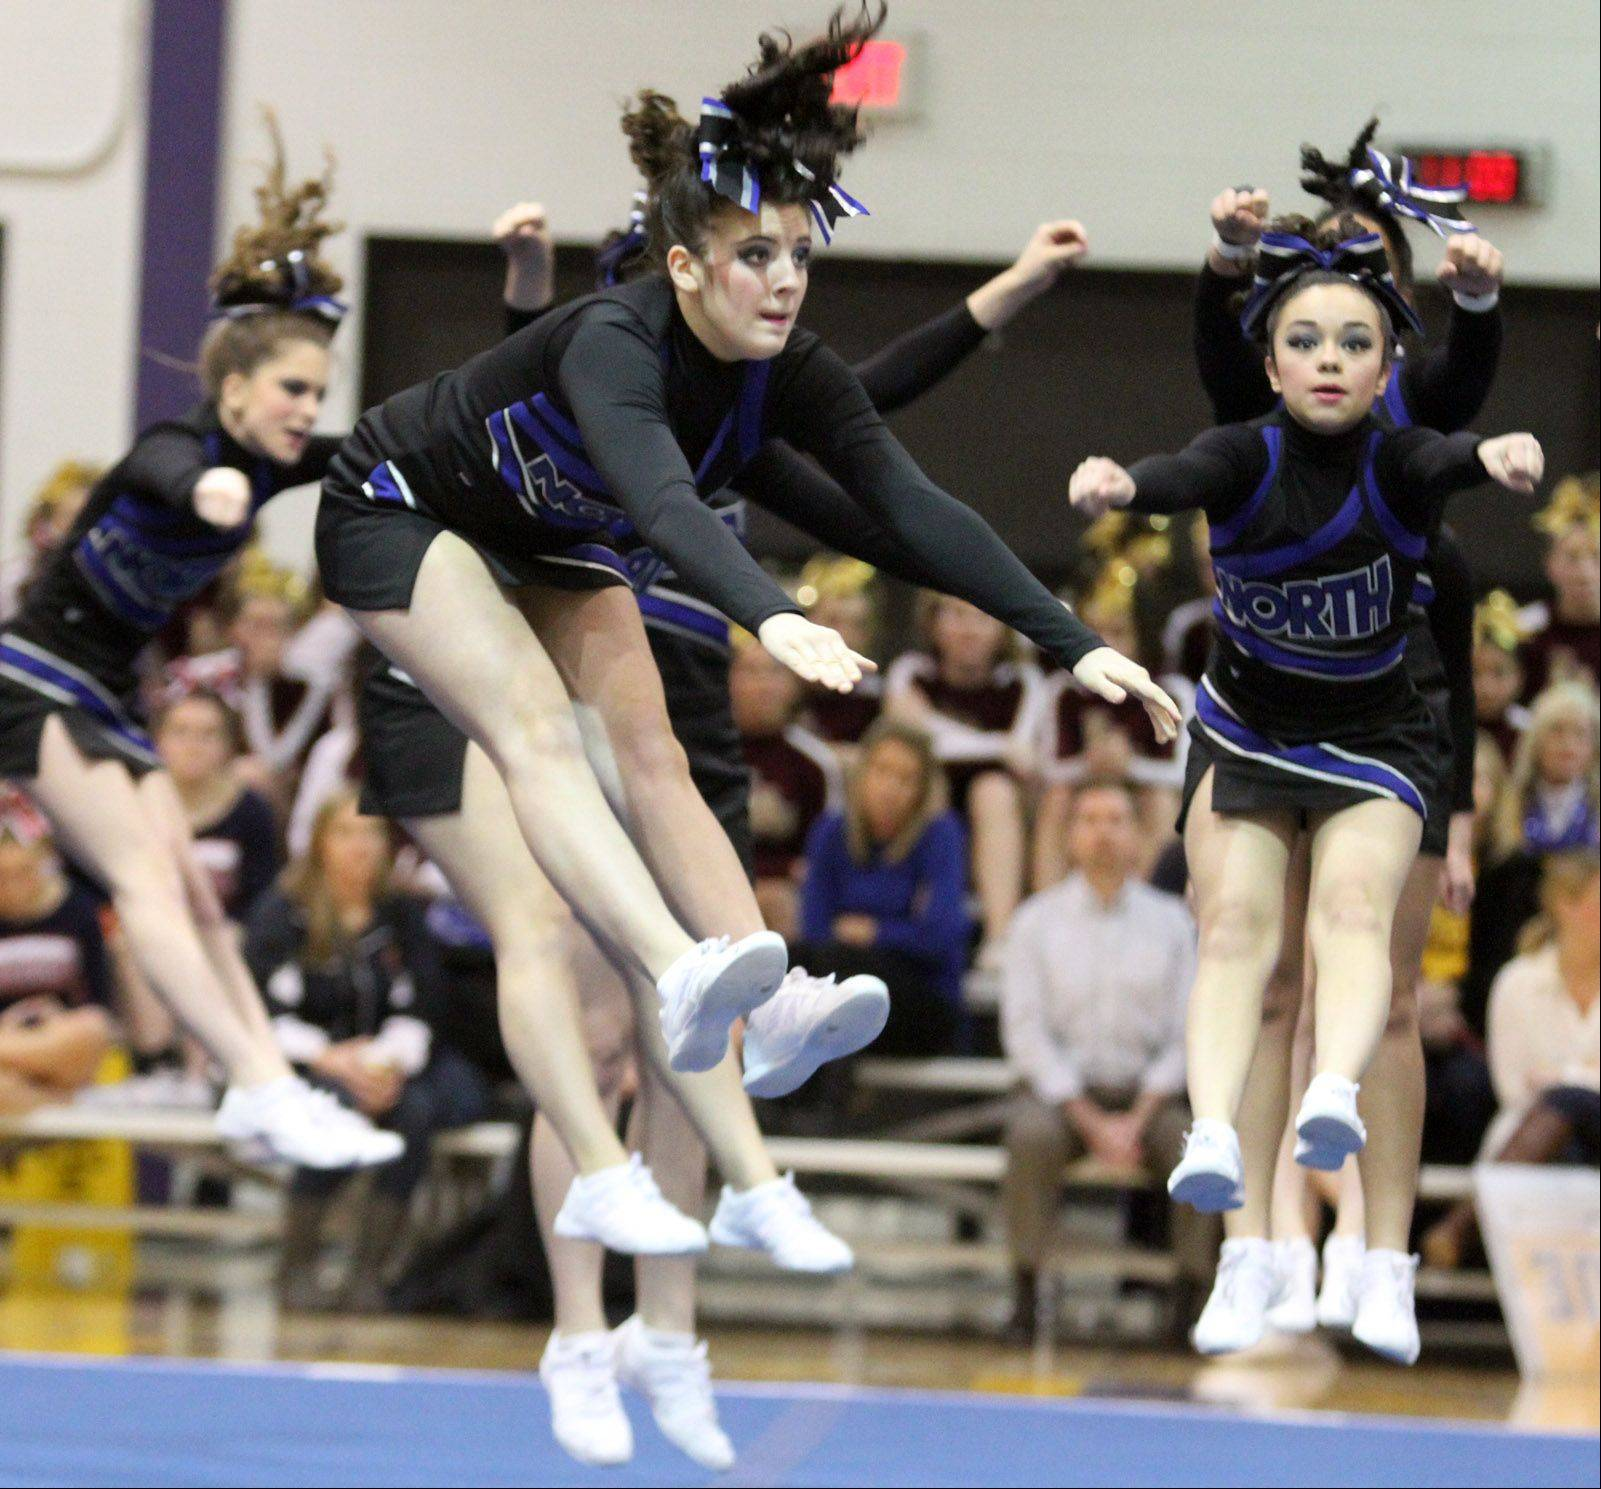 The St. Charles North High School cheer team performs at the IHSA competitive cheerleading sectionals in Rolling Meadows on Saturday.